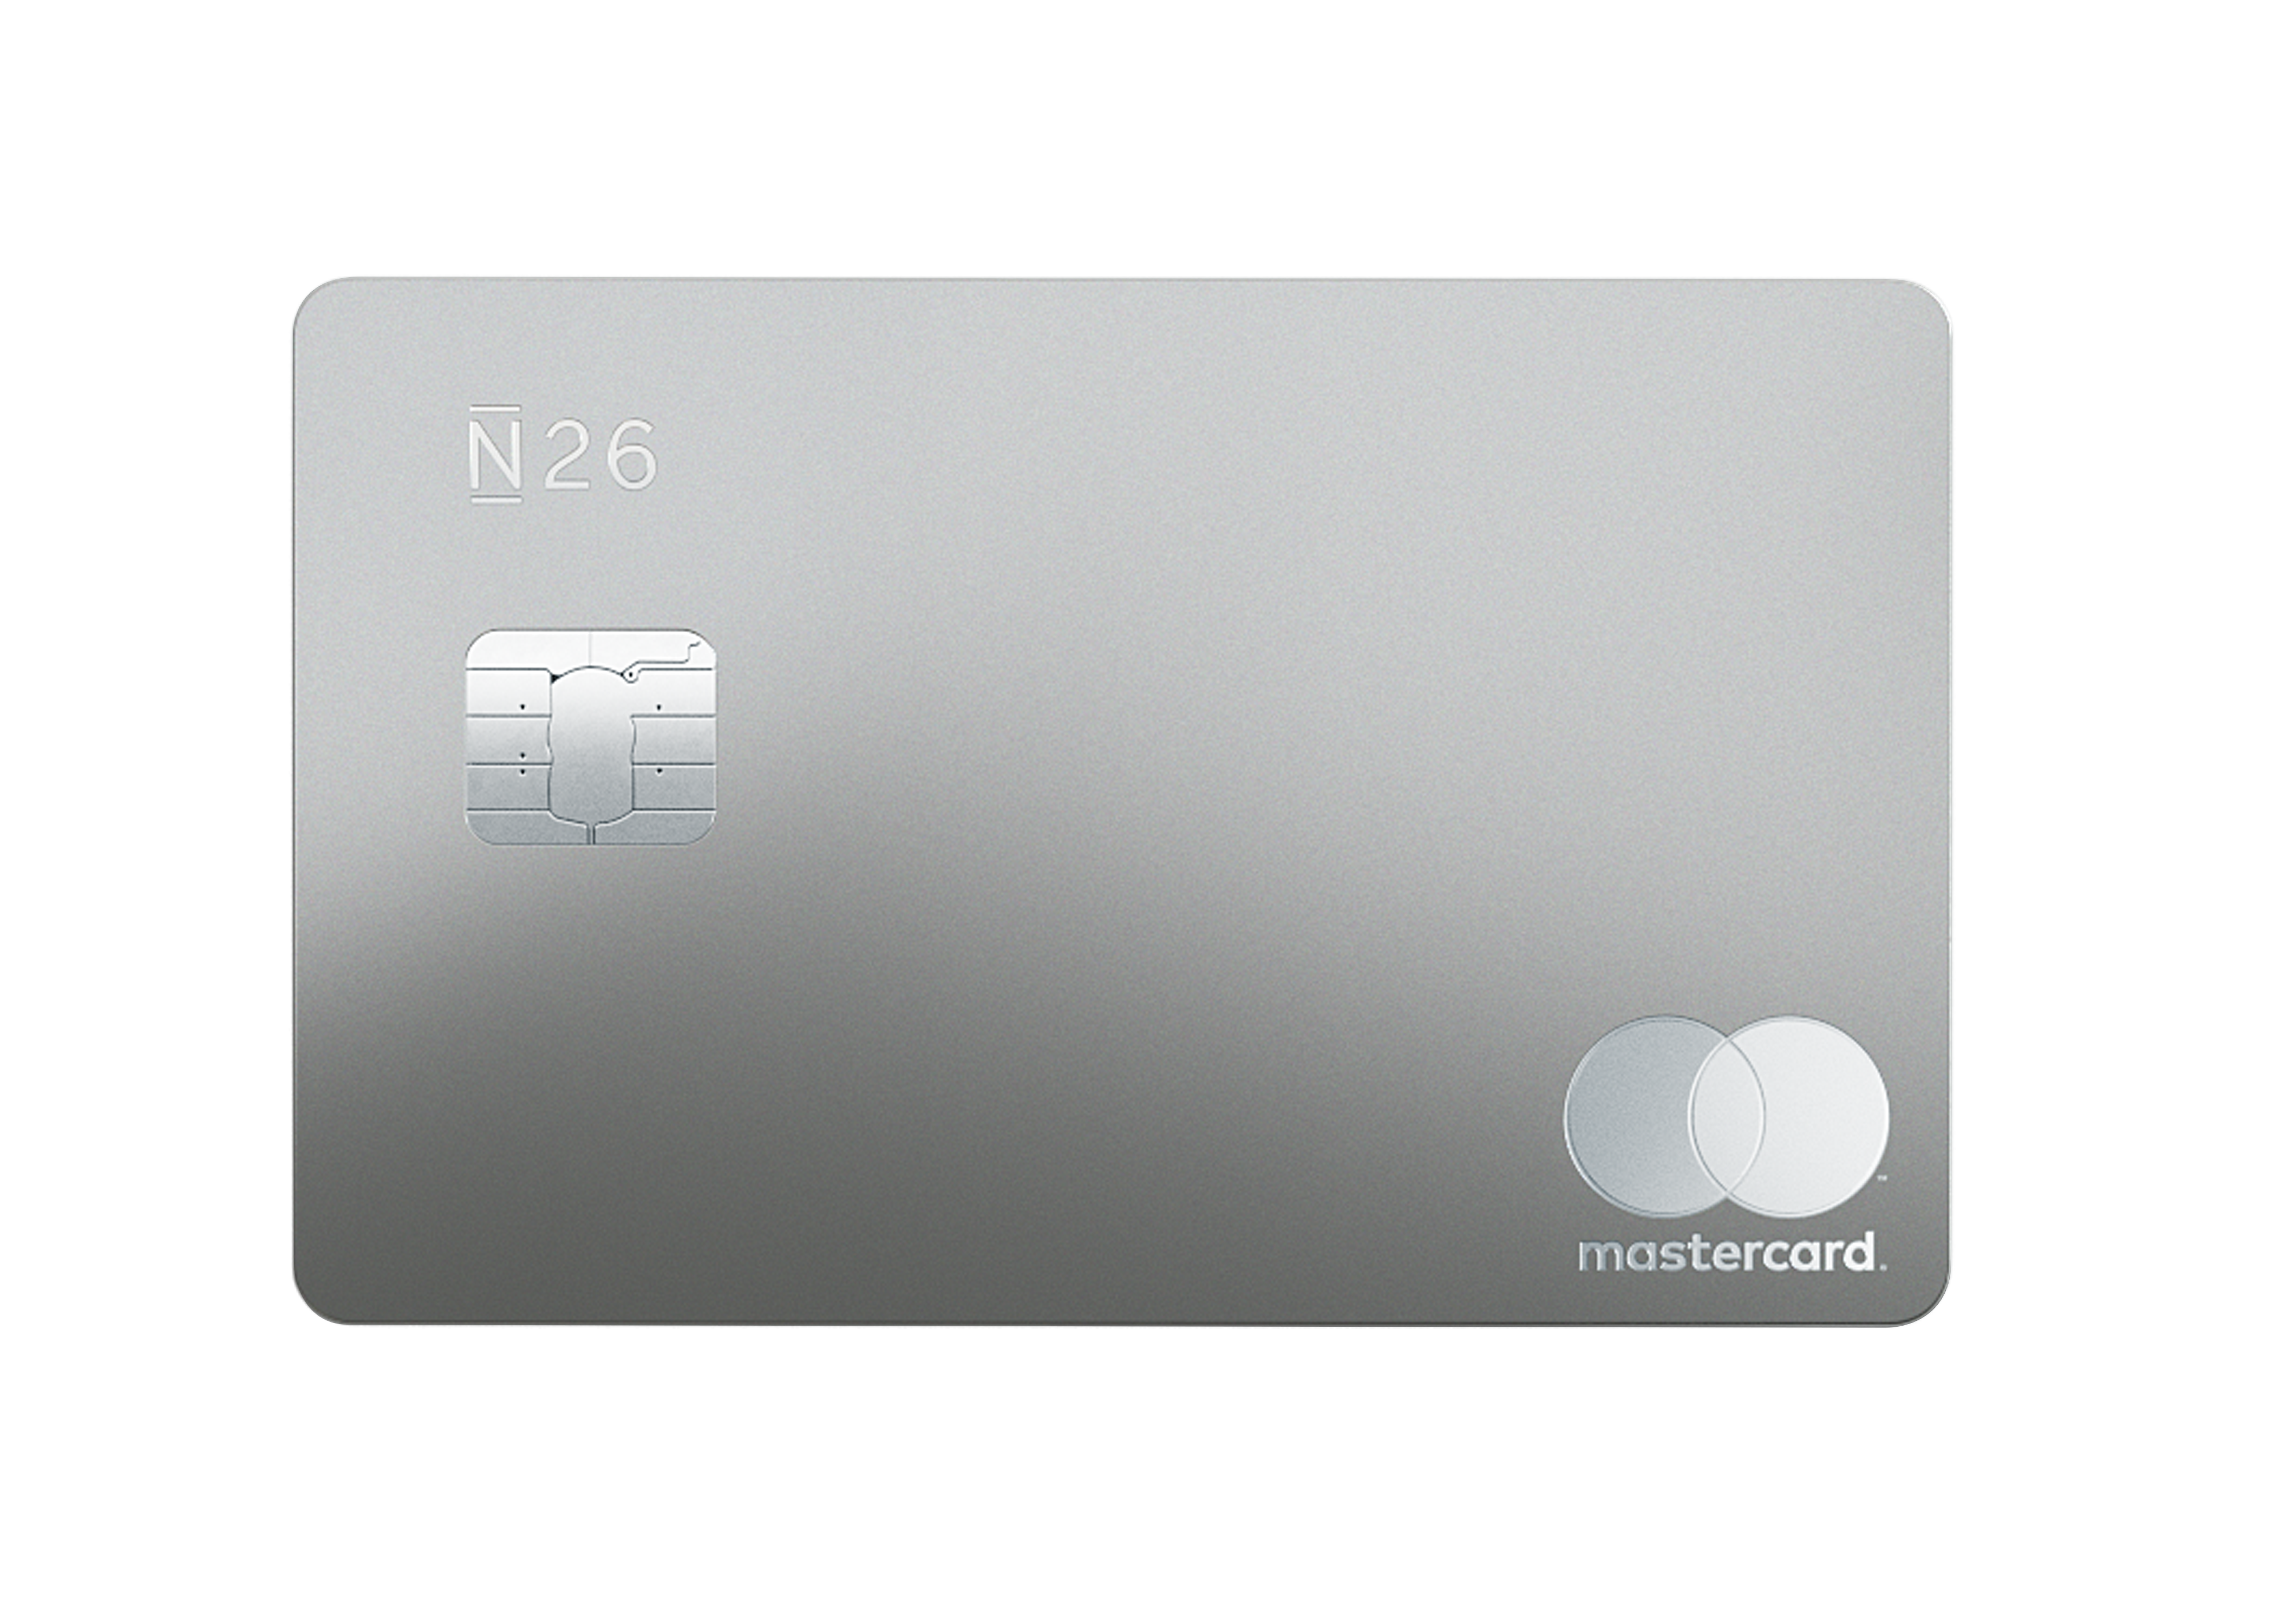 N26 Press Image of our Premium Metal Card in Slate Grey